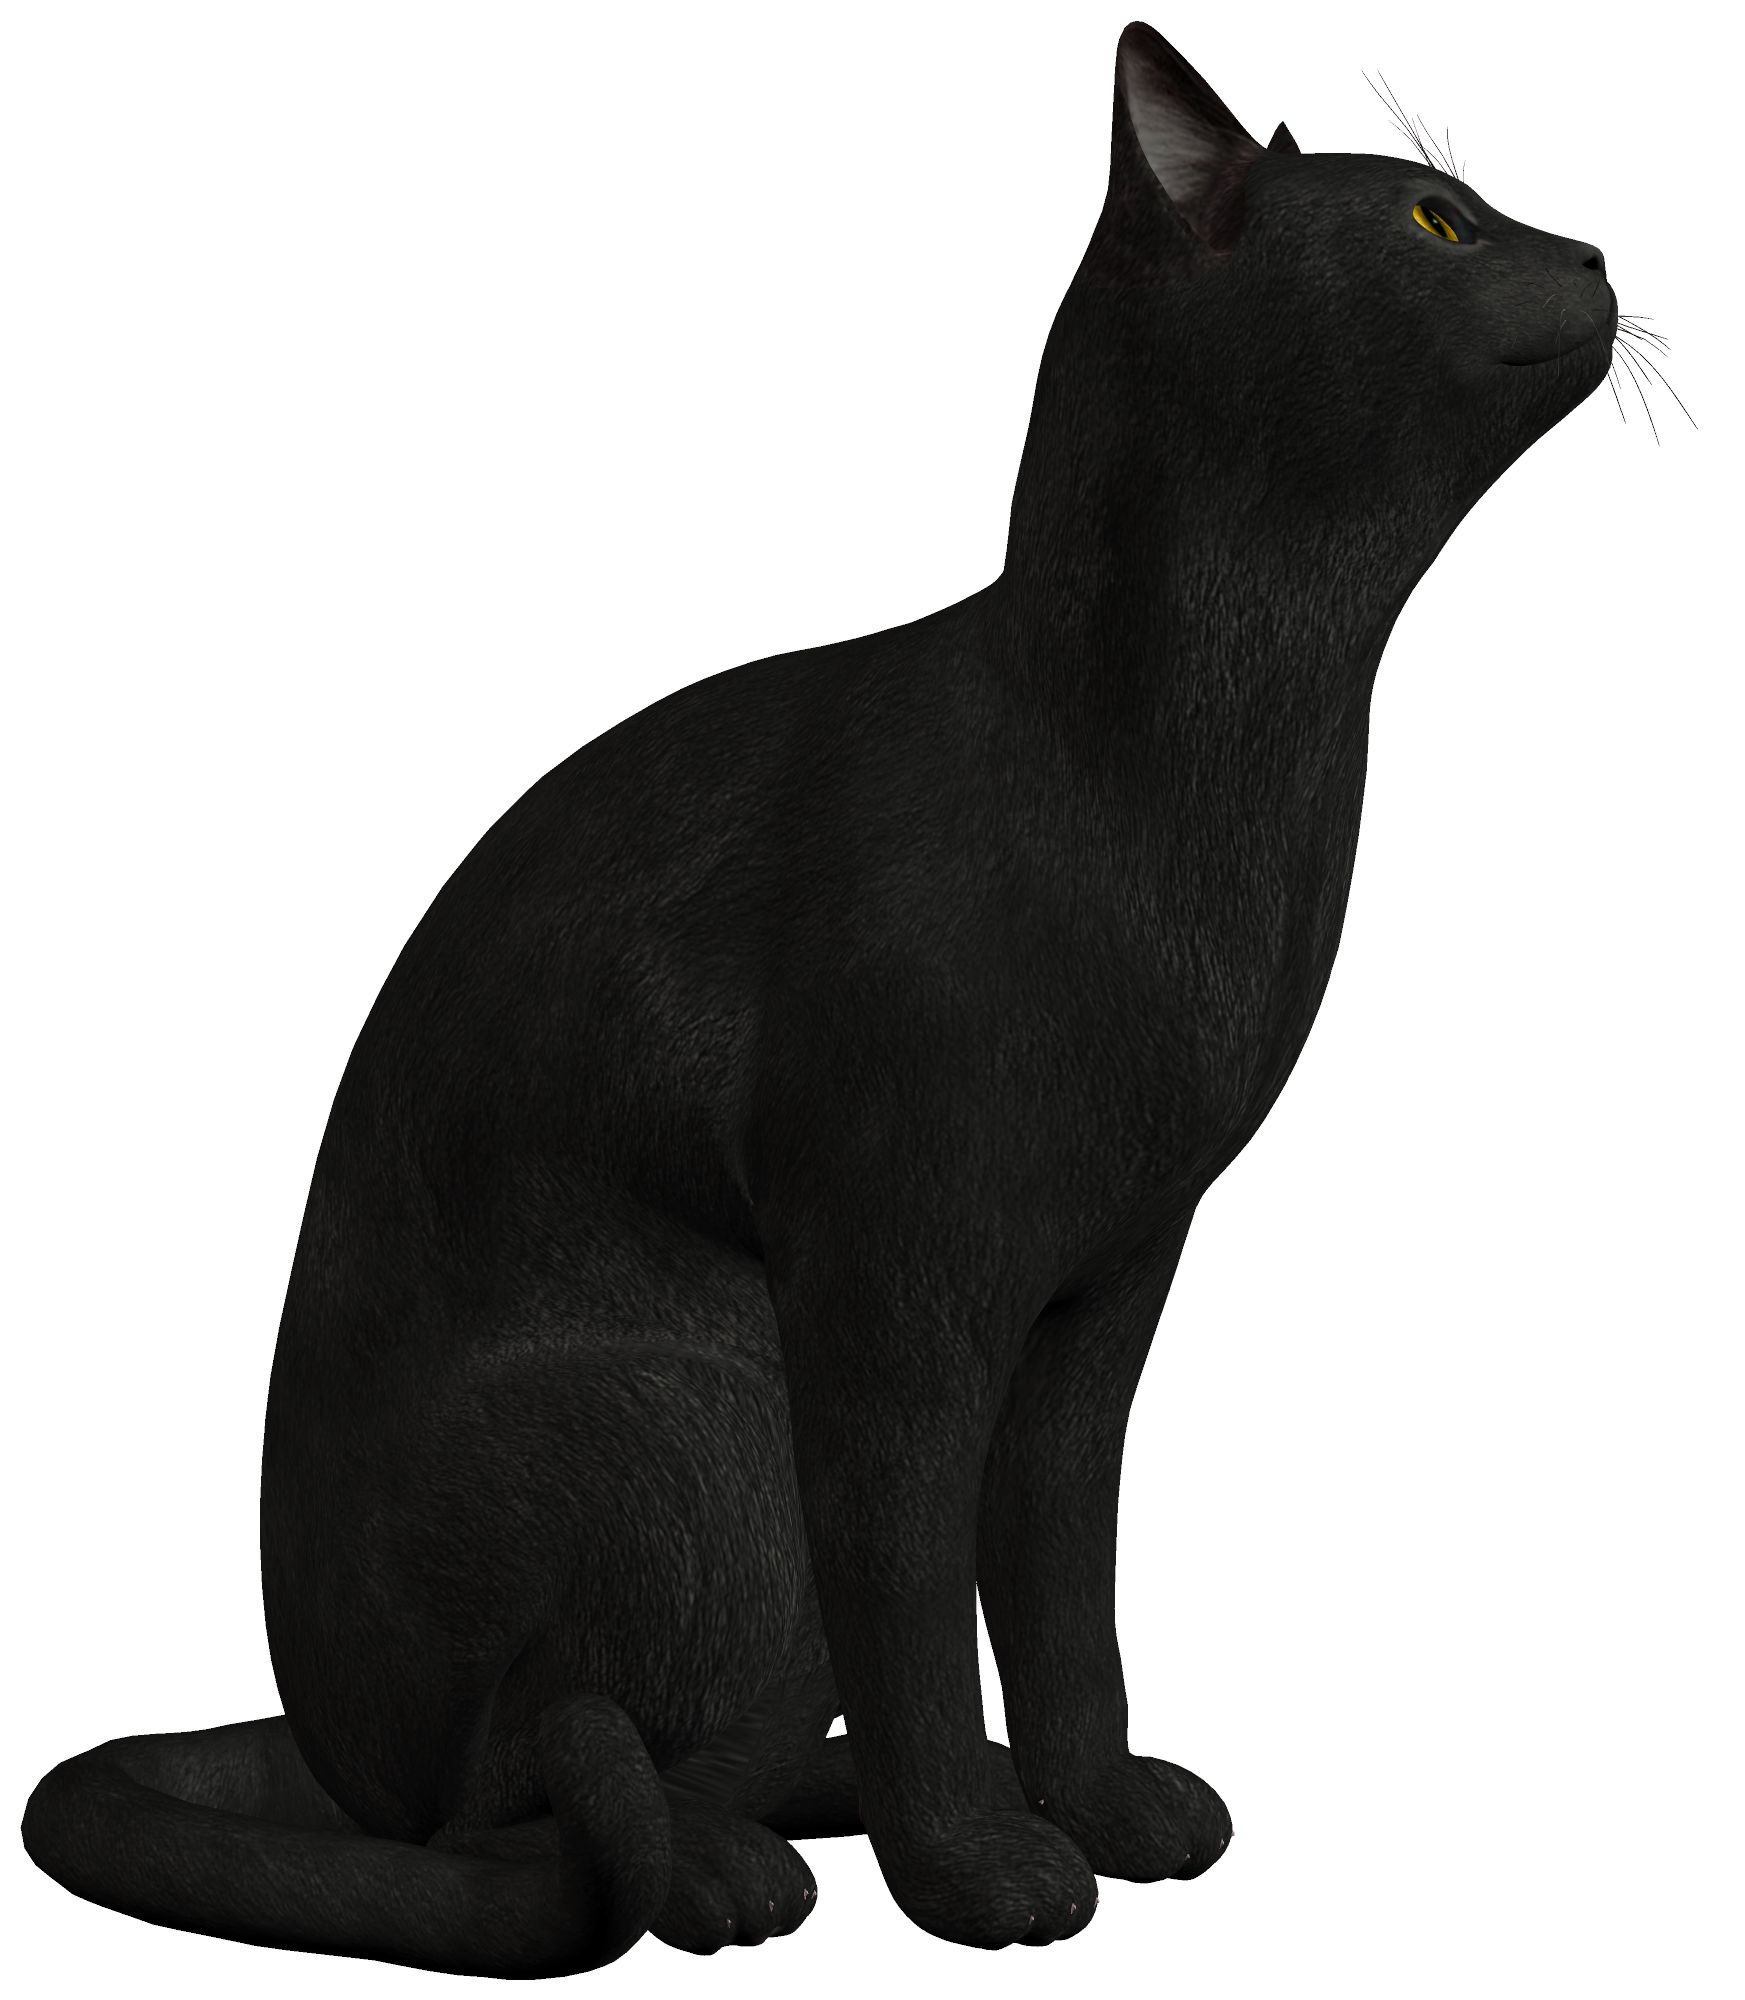 Black cat clipart black and white picture transparent stock Black Cat PNG Clipart - Best WEB Clipart picture transparent stock